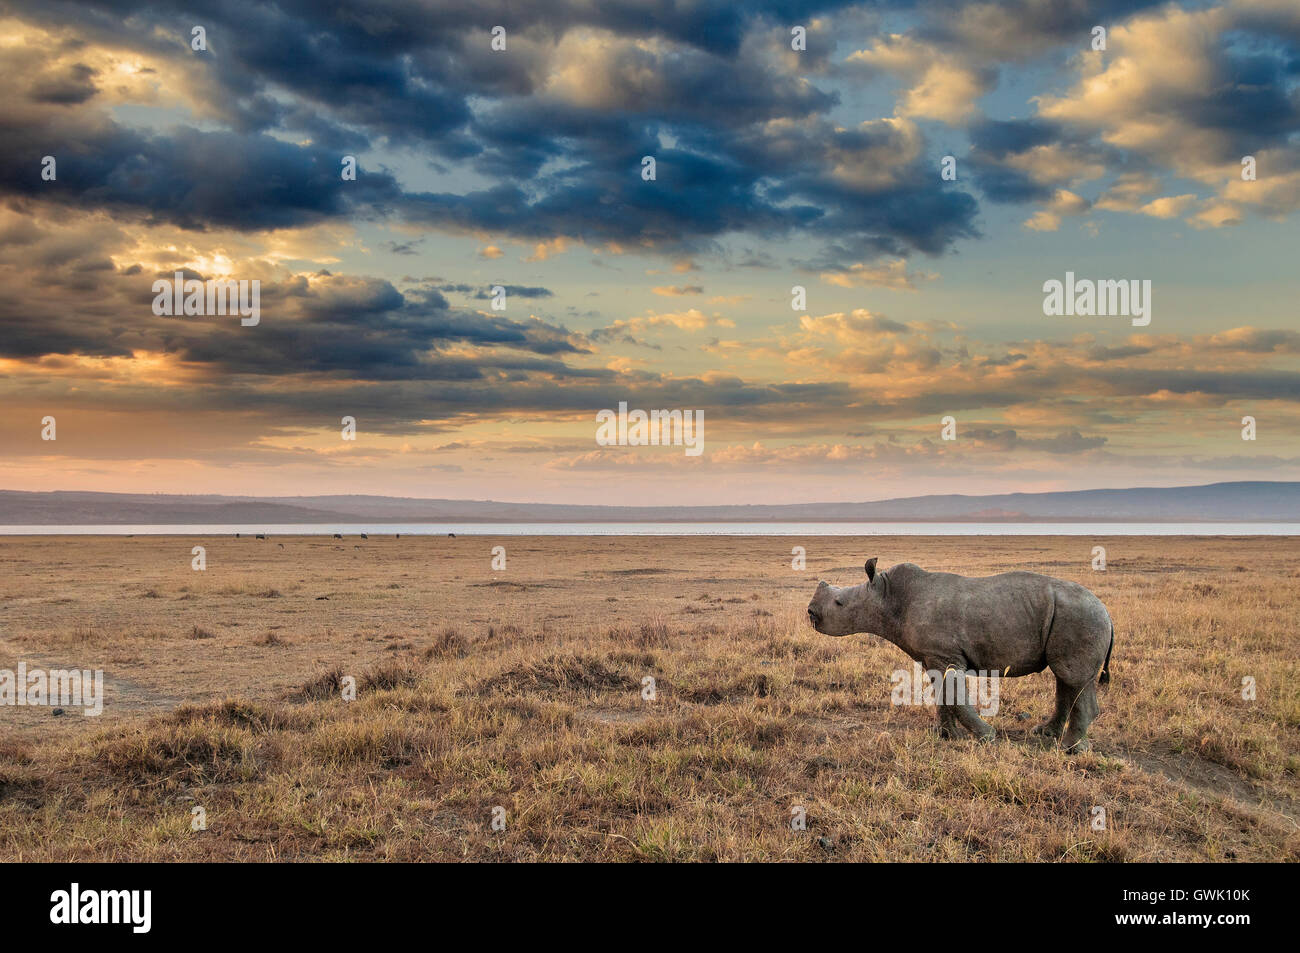 Baby Rhinoceros on the shores of Lake Nakuru, Kenya. Africa. - Stock Image